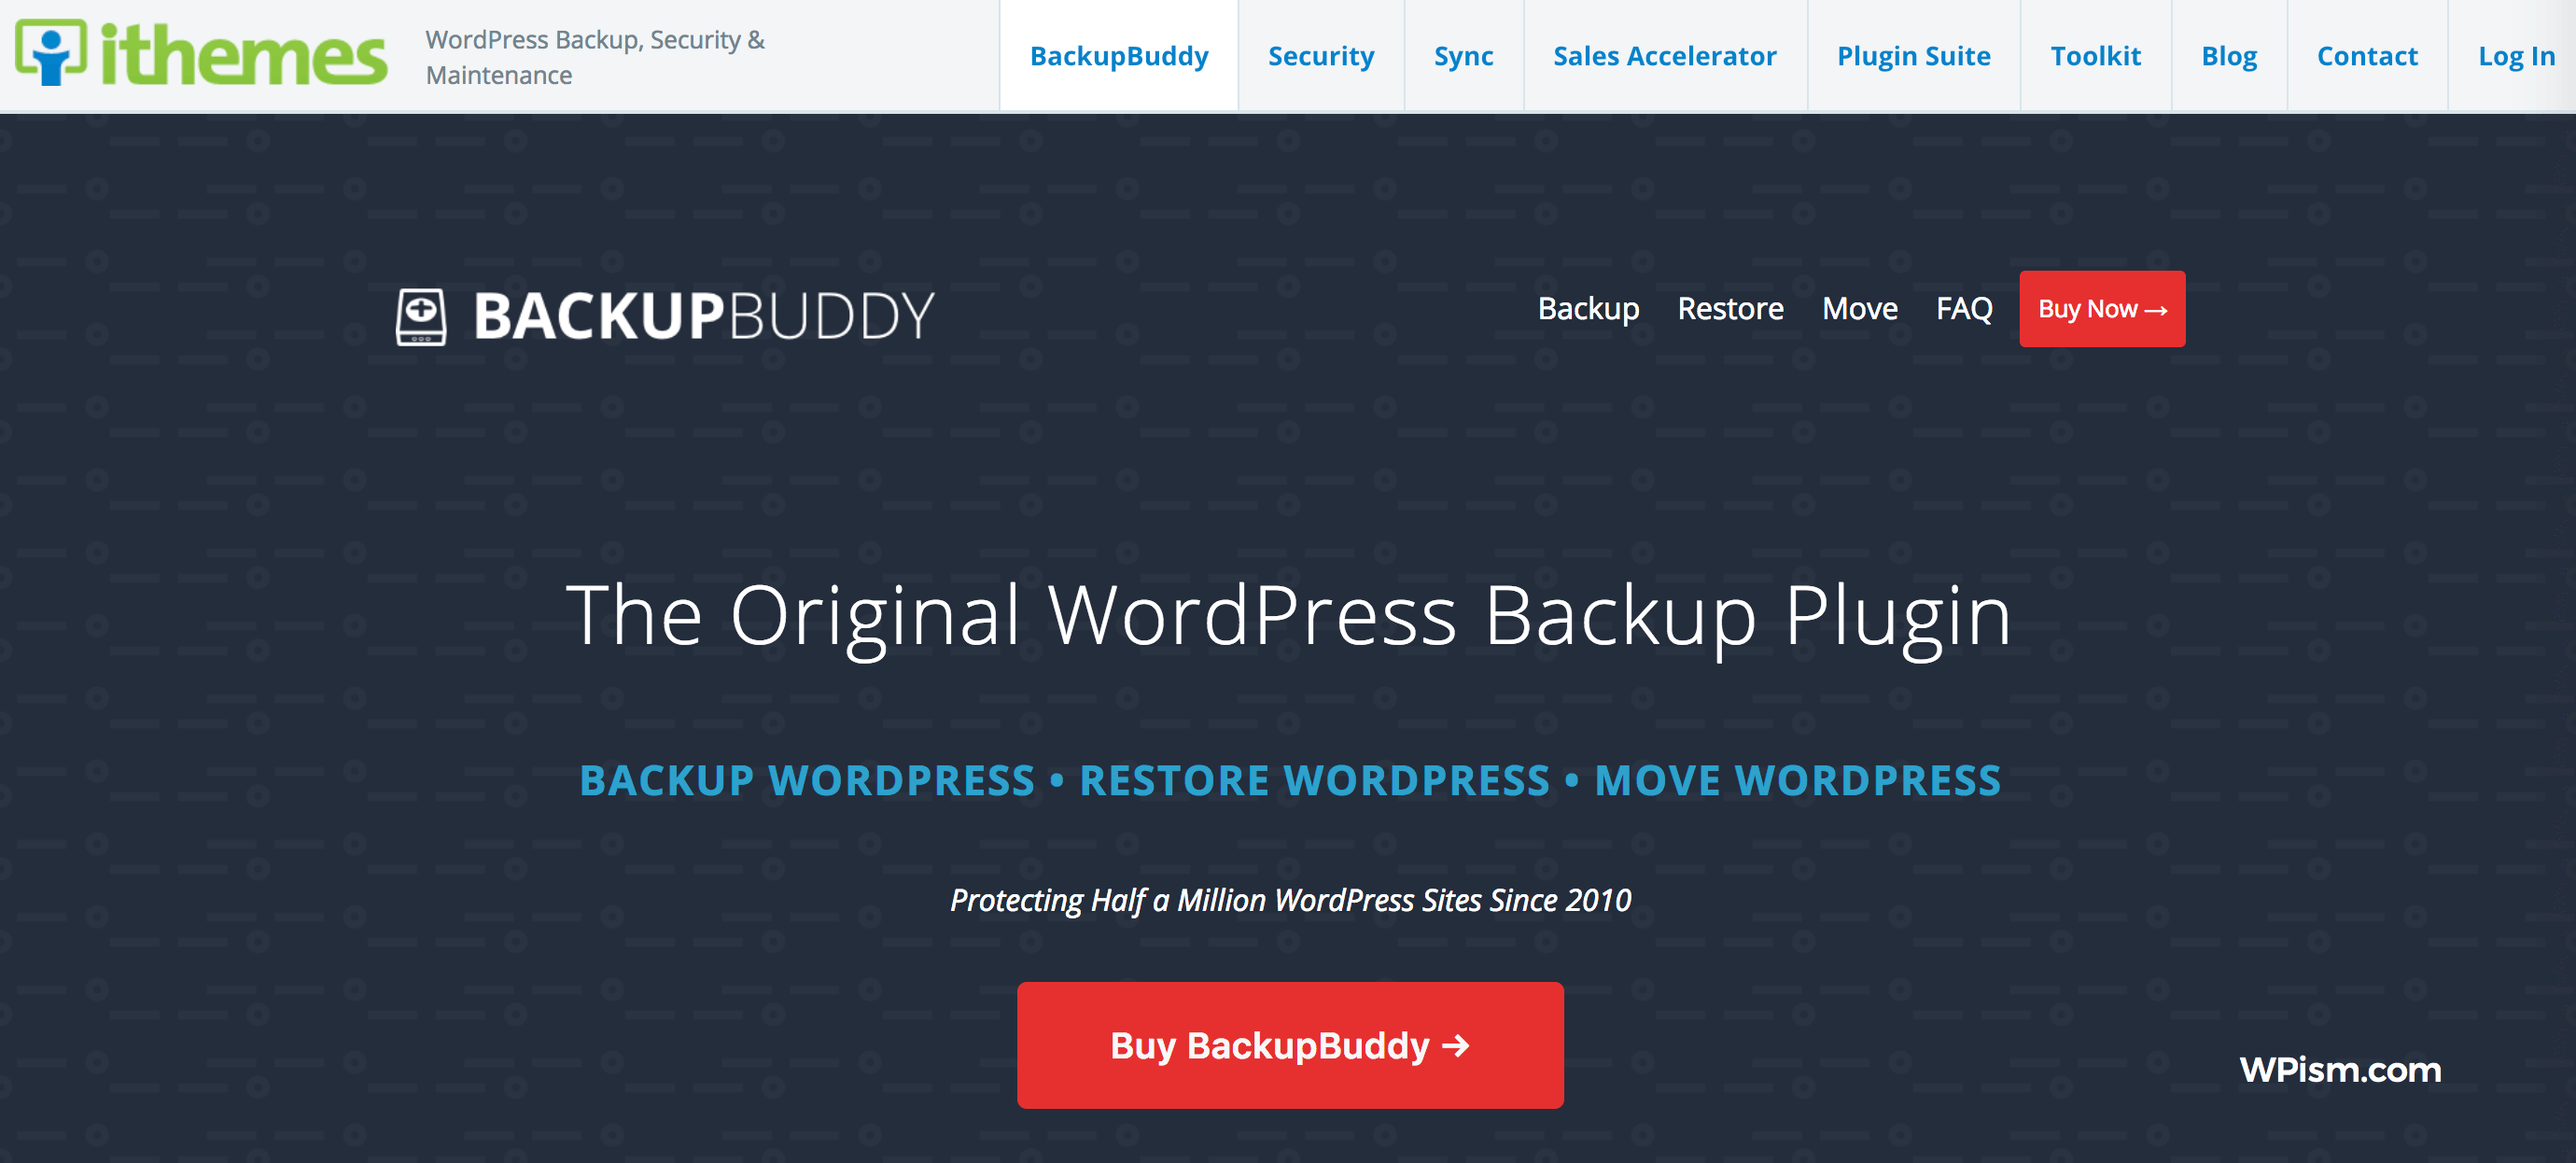 BackupBuddy Plugin Migration Backup ithemes